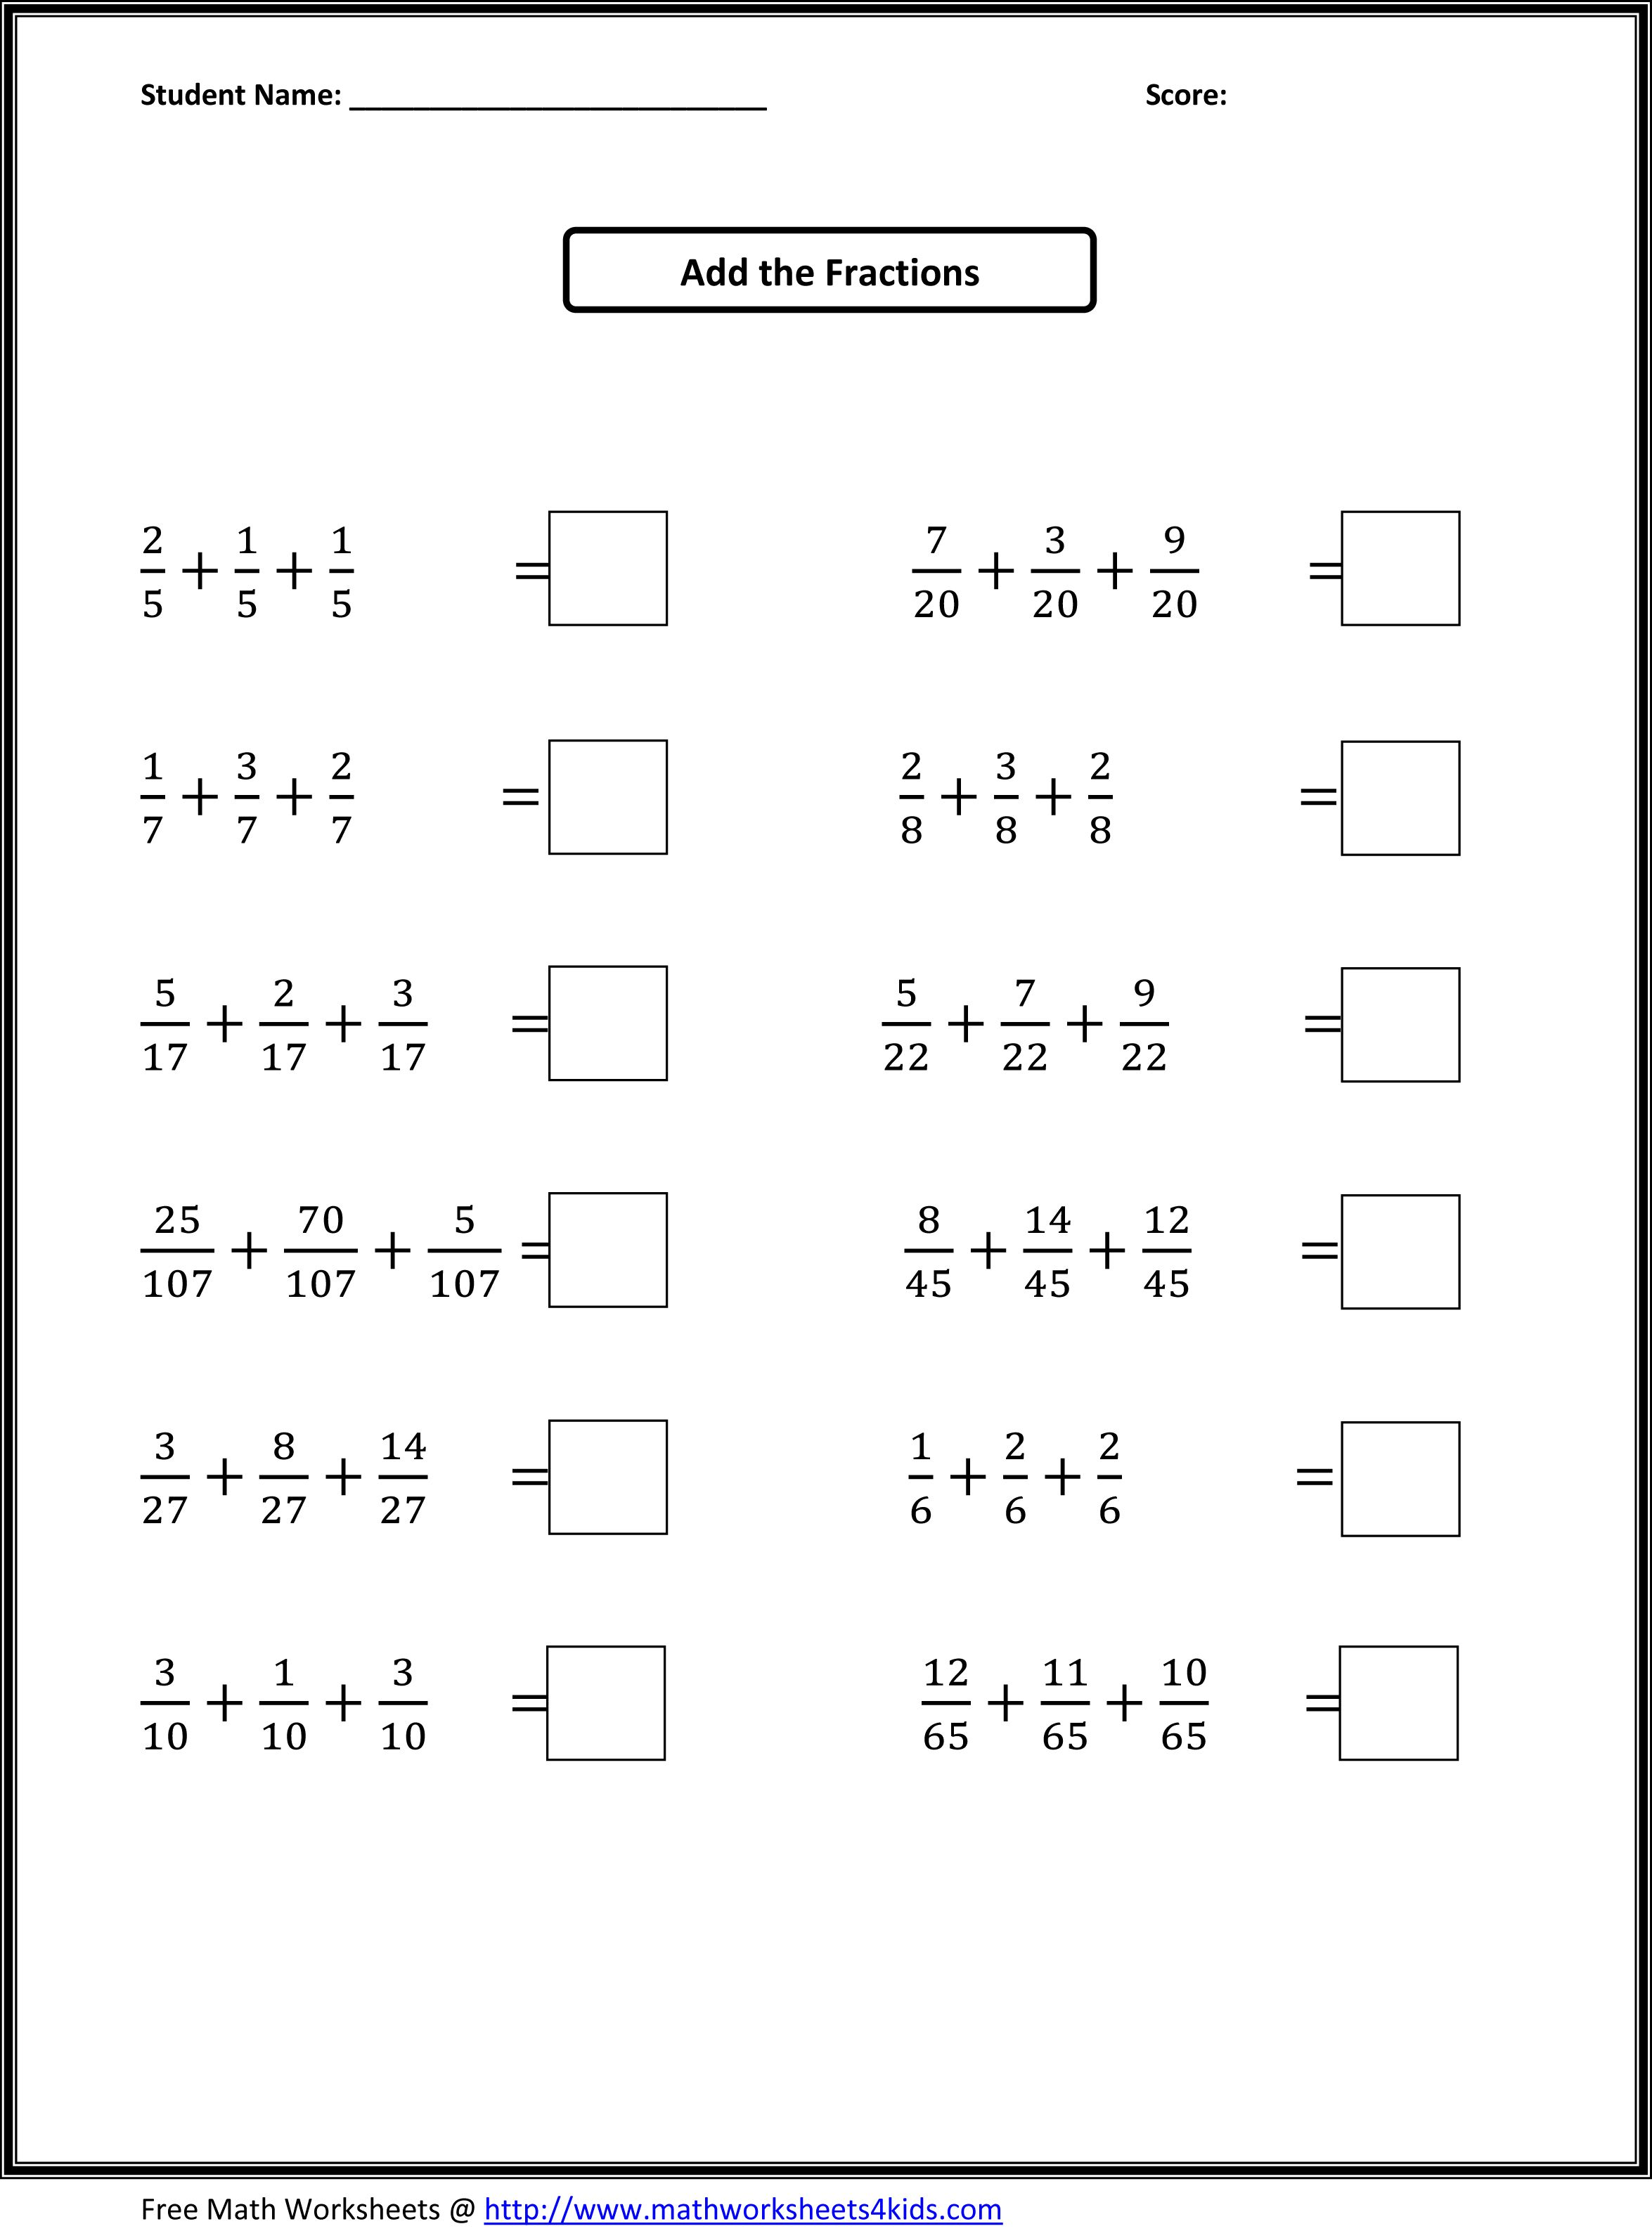 Printables Worksheets For 4th Graders 1000 images about math worksheets on pinterest 4th grade geometry and fourth math